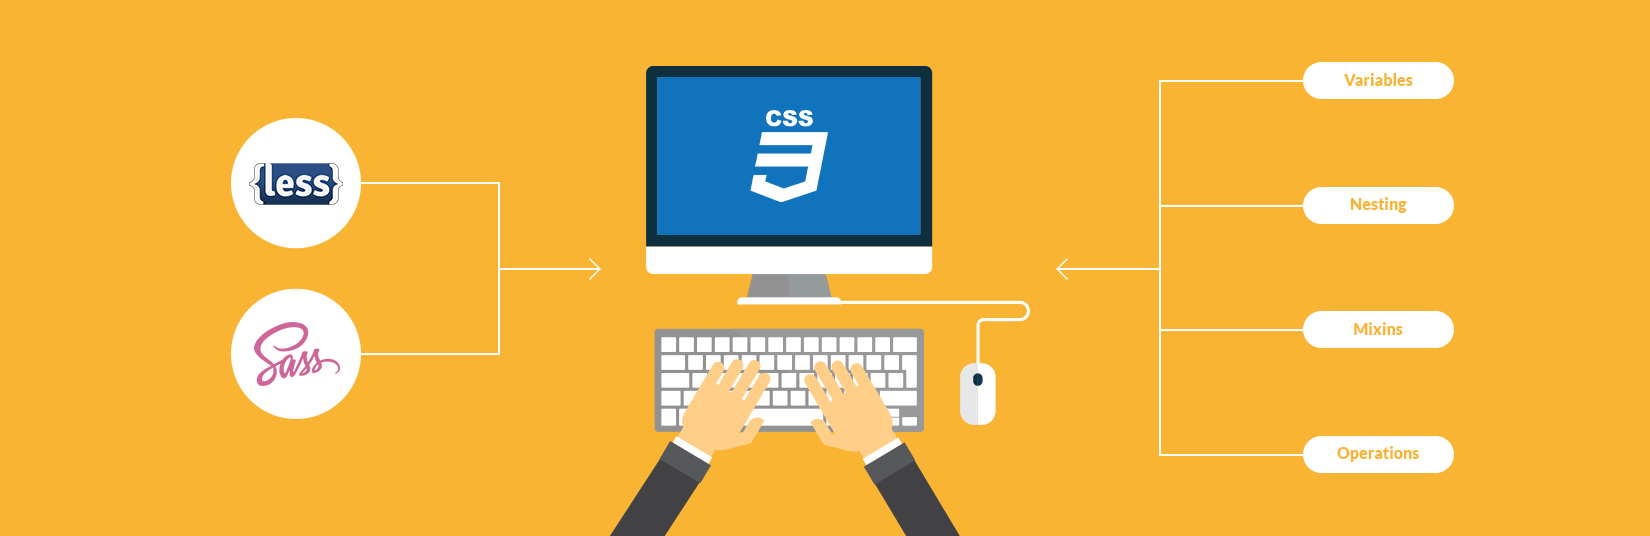 Using CSS through CSS Preprocessor